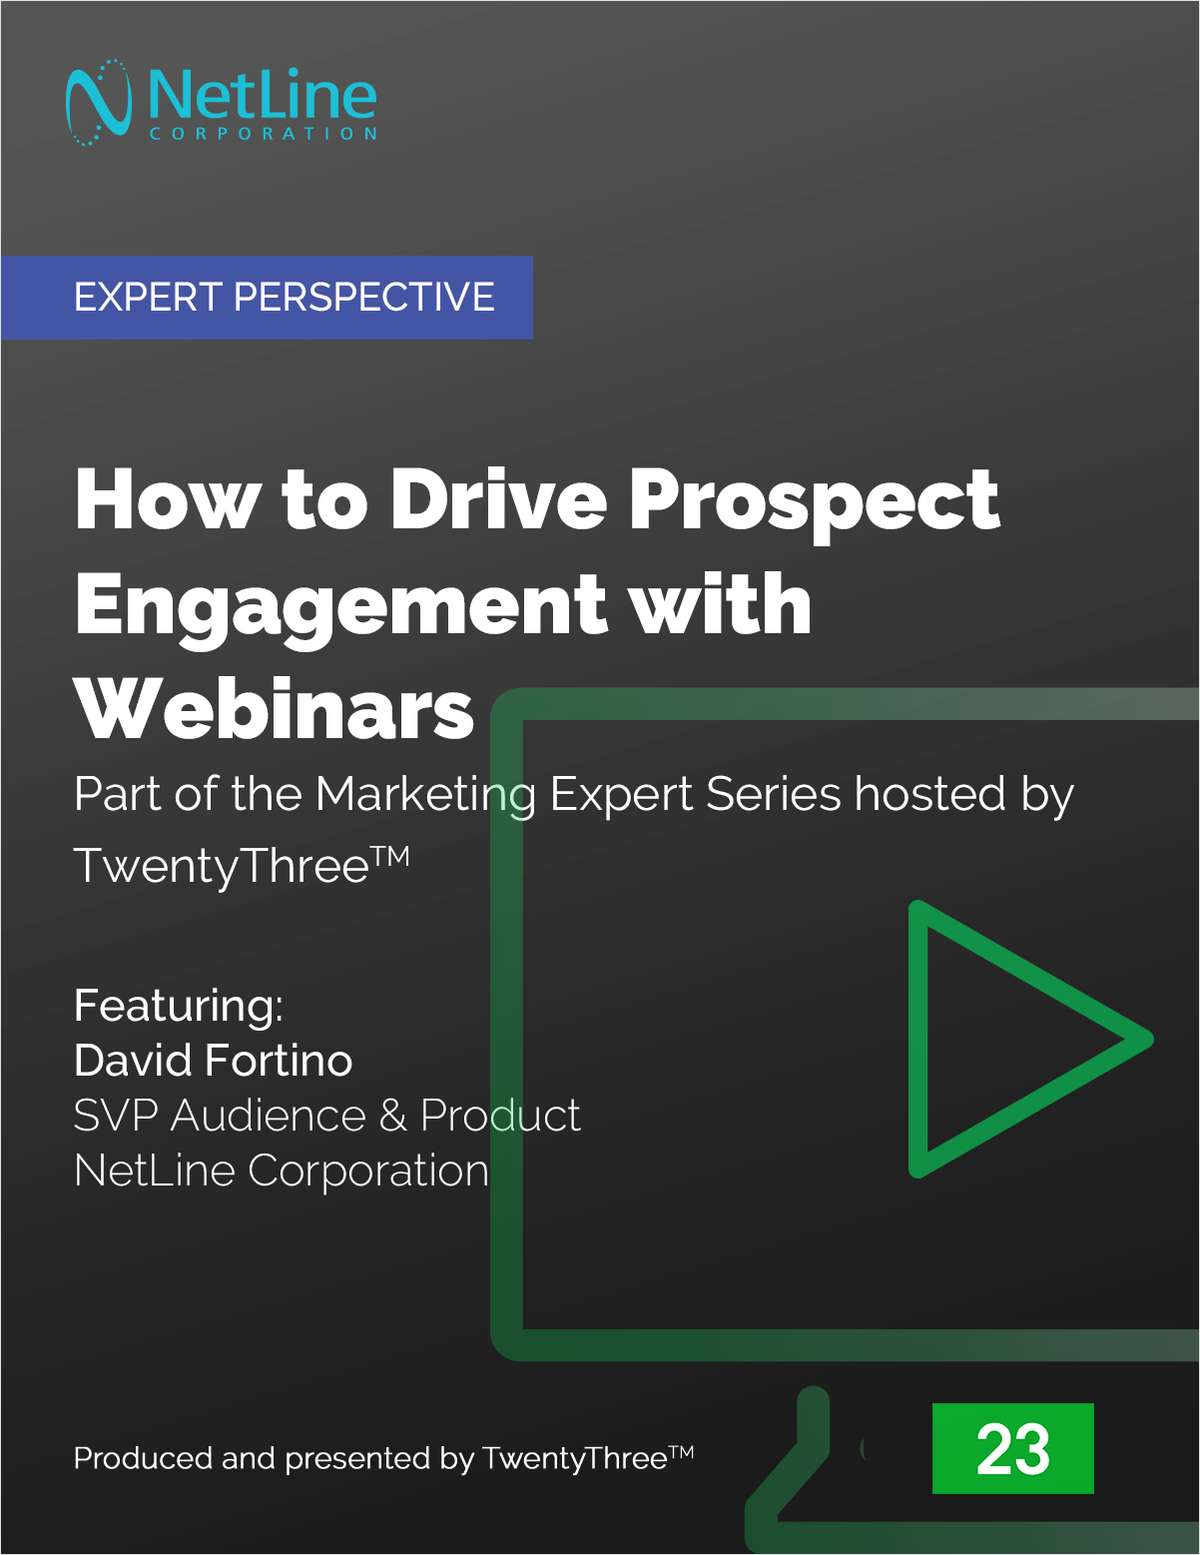 How to Drive Prospect Engagement with Webinars